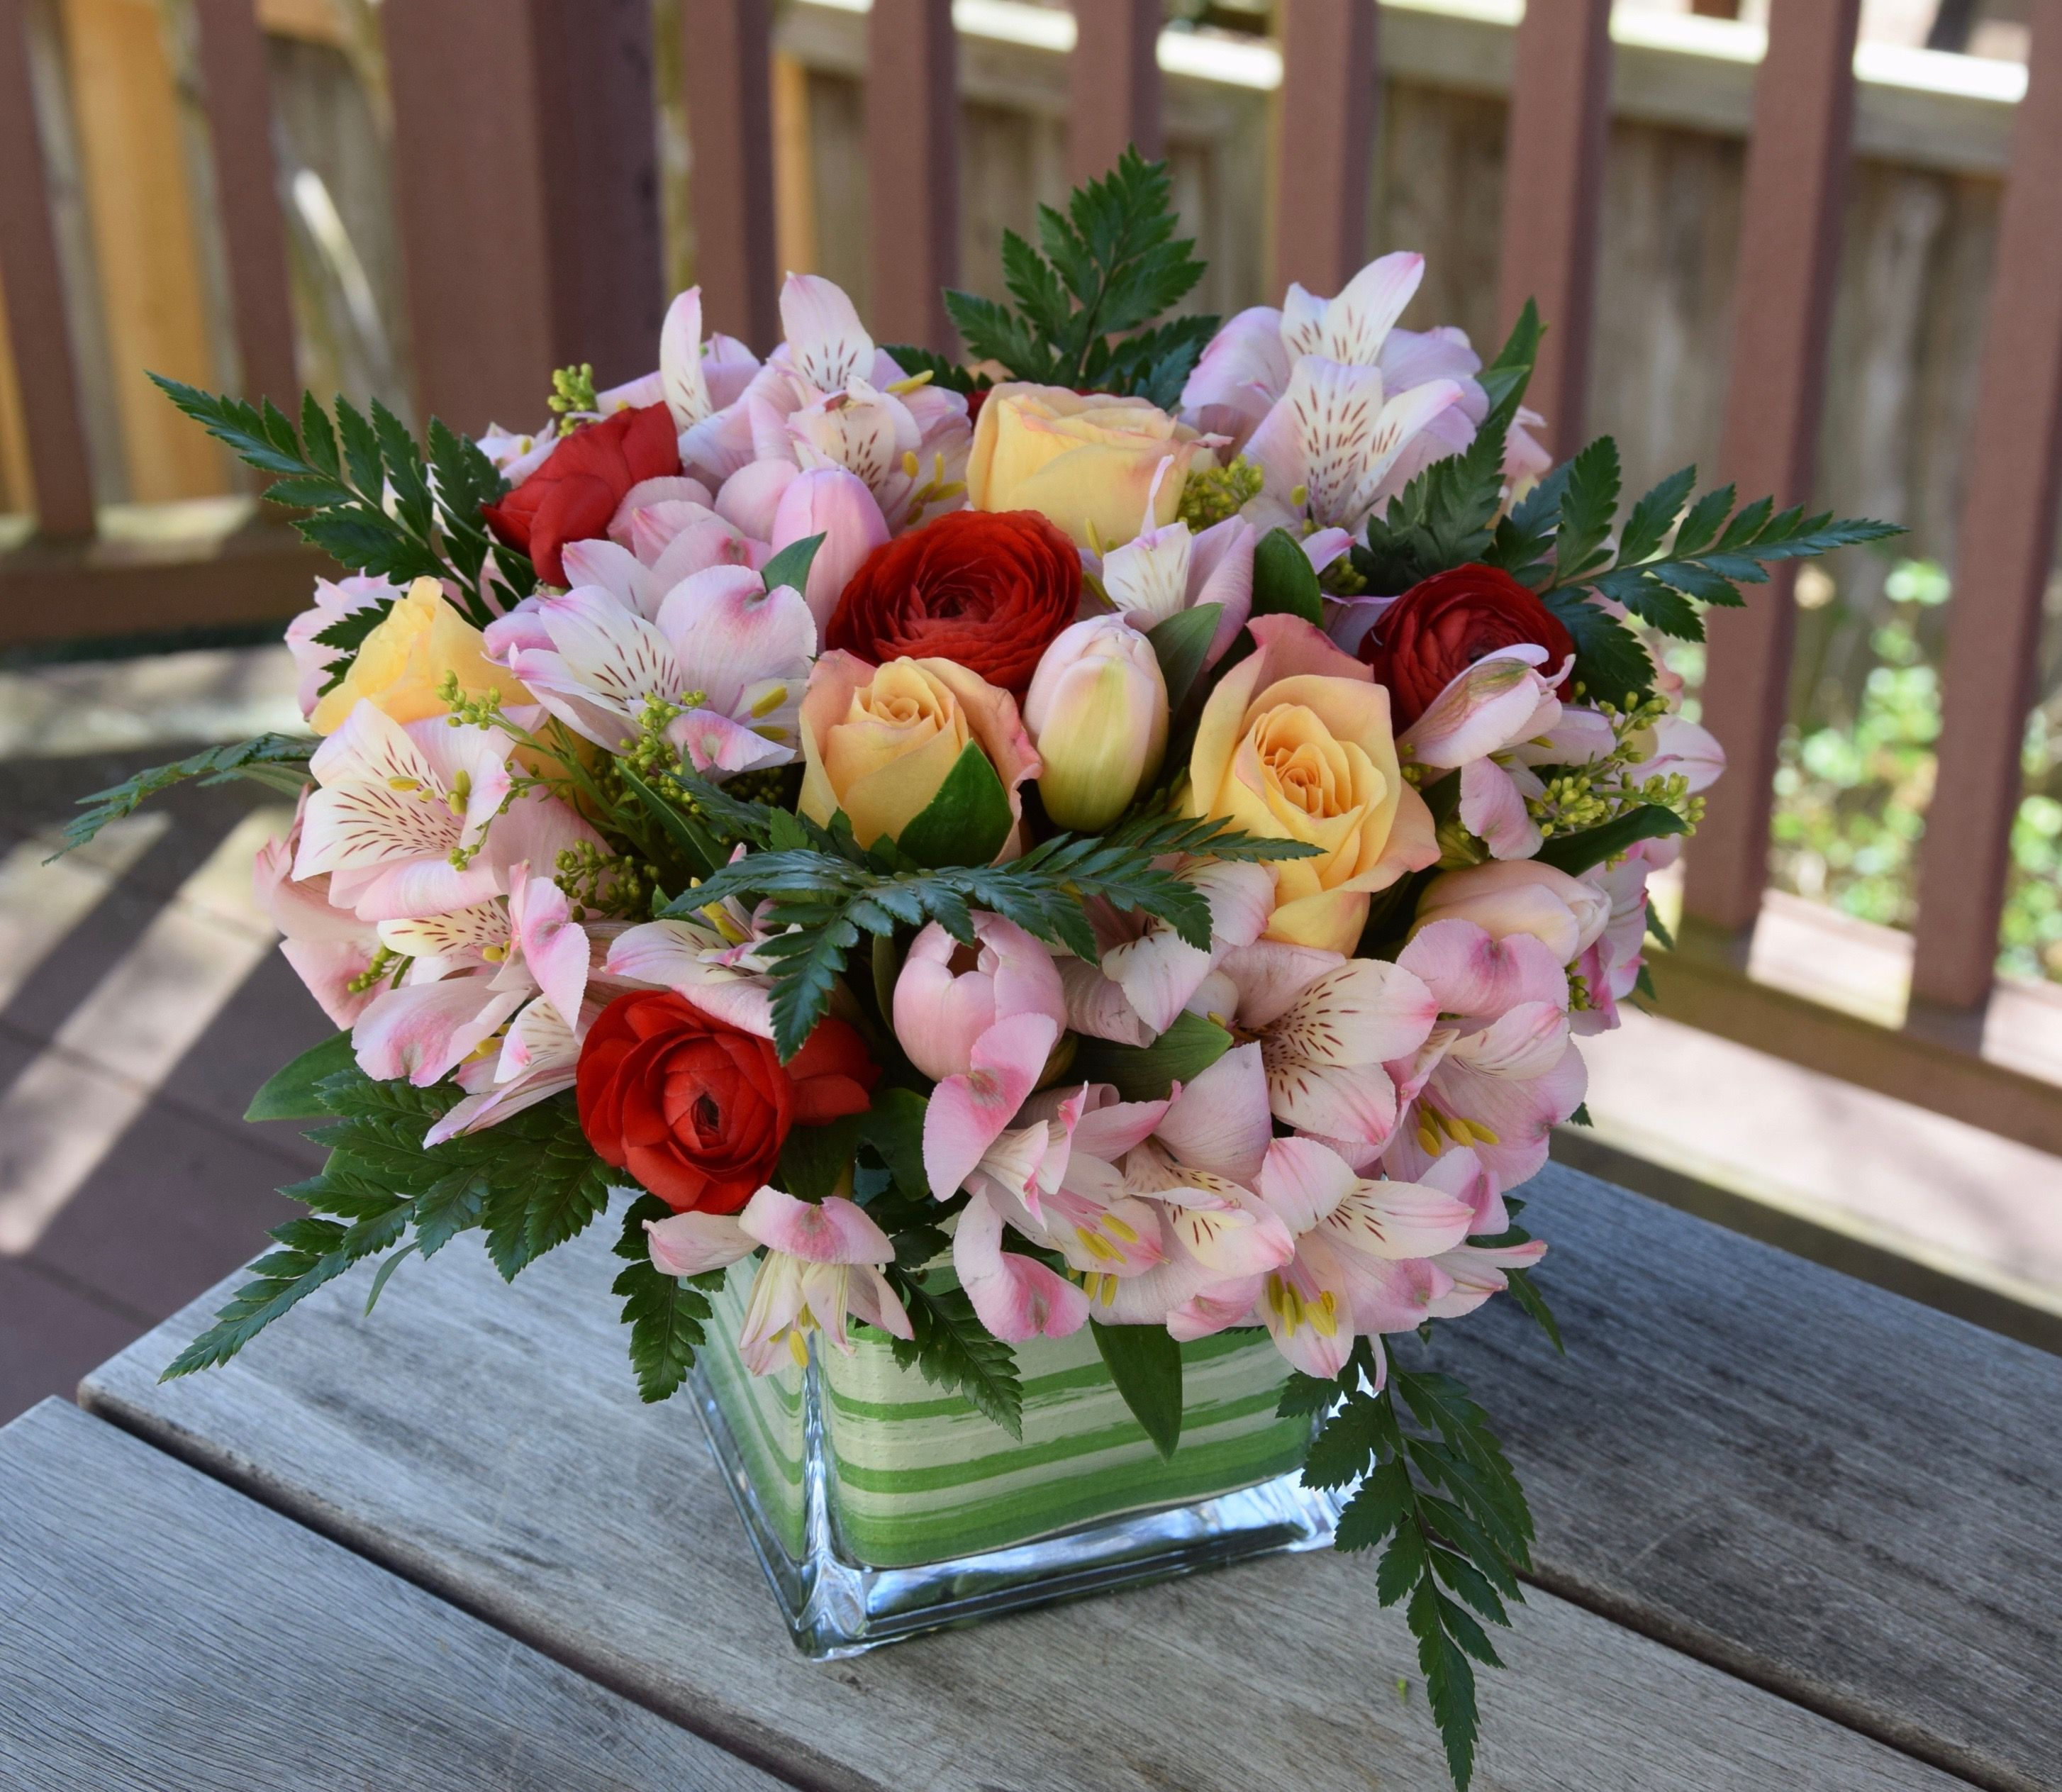 Flower Arrangement With Pink Alstroemerias Red Ranunculus And Creamy Roses In 2020 Fresh Flowers Arrangements Flower Arrangements Birthday Flowers For Her